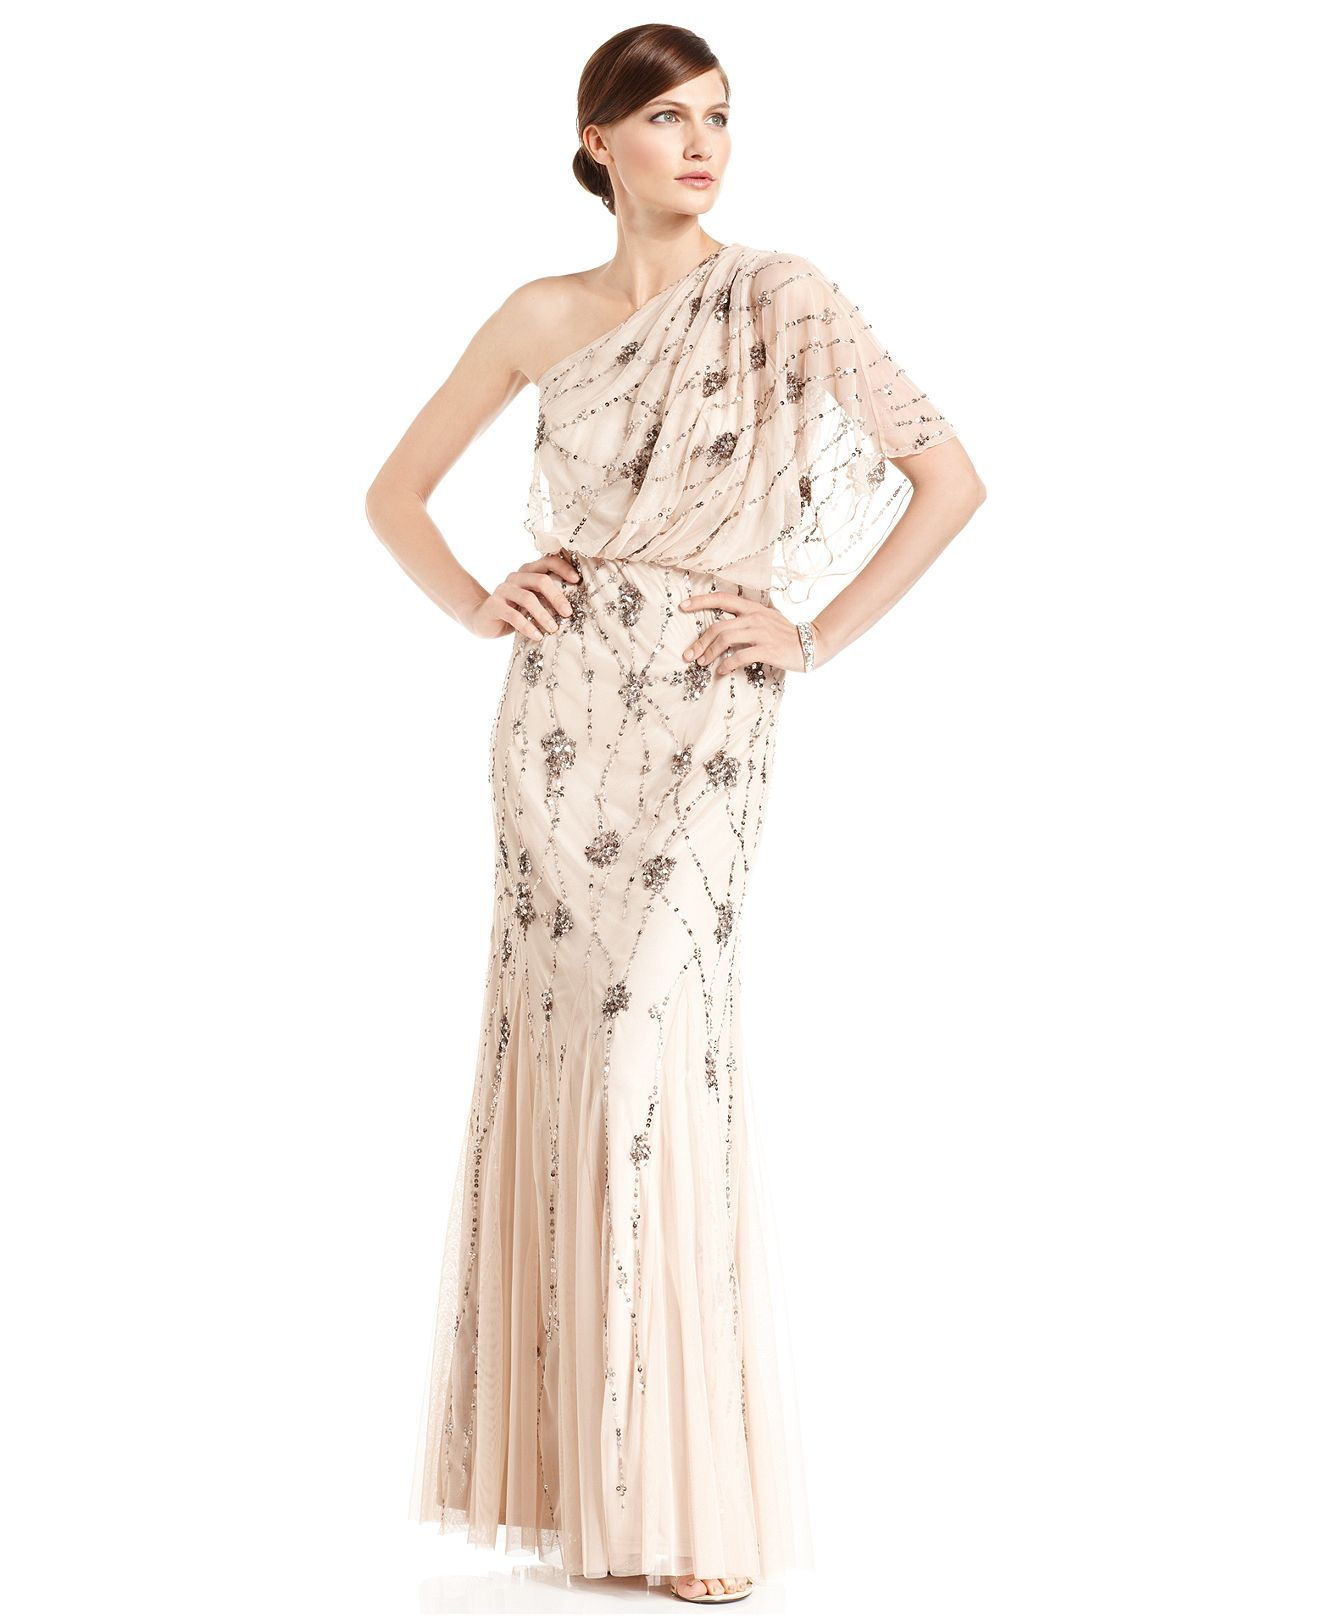 Adrianna Papell Dress Short Sleeve One Shoulder Beaded Blouson Gown Womens Dresses Macy S Gowns Womens Wedding Dresses